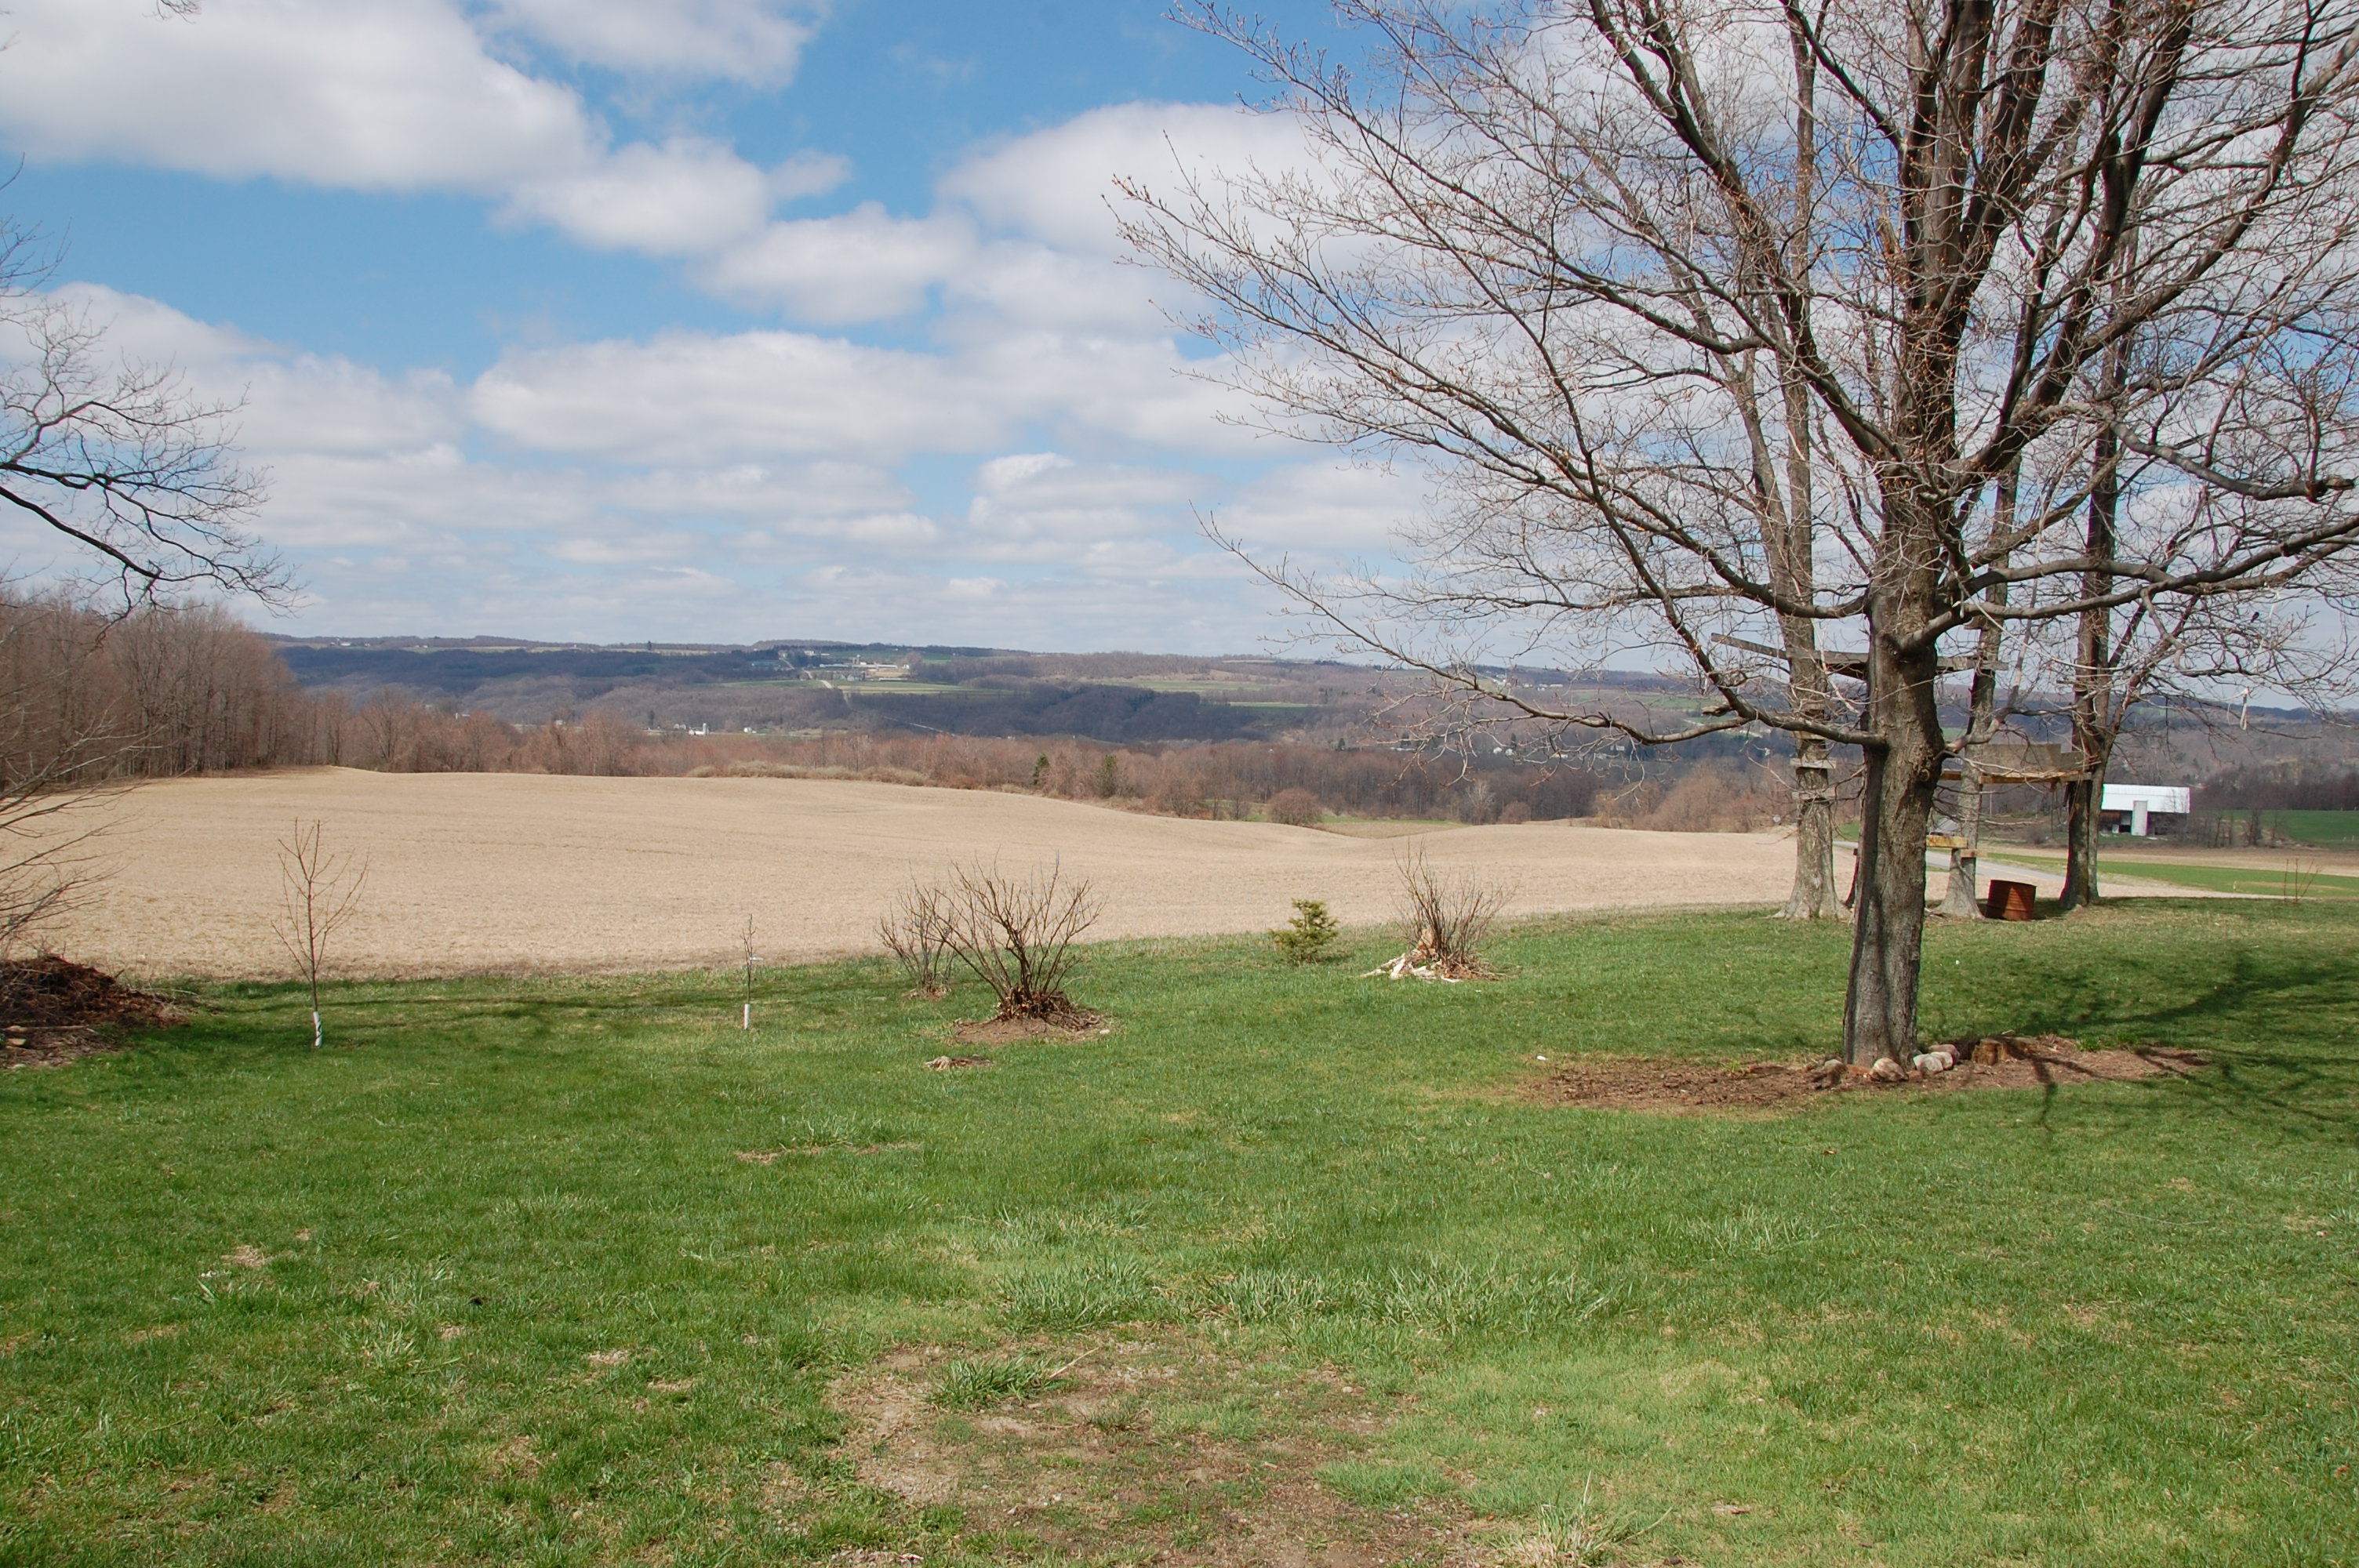 The view out Tammi's kitchen window. Big farms all on the hillside.